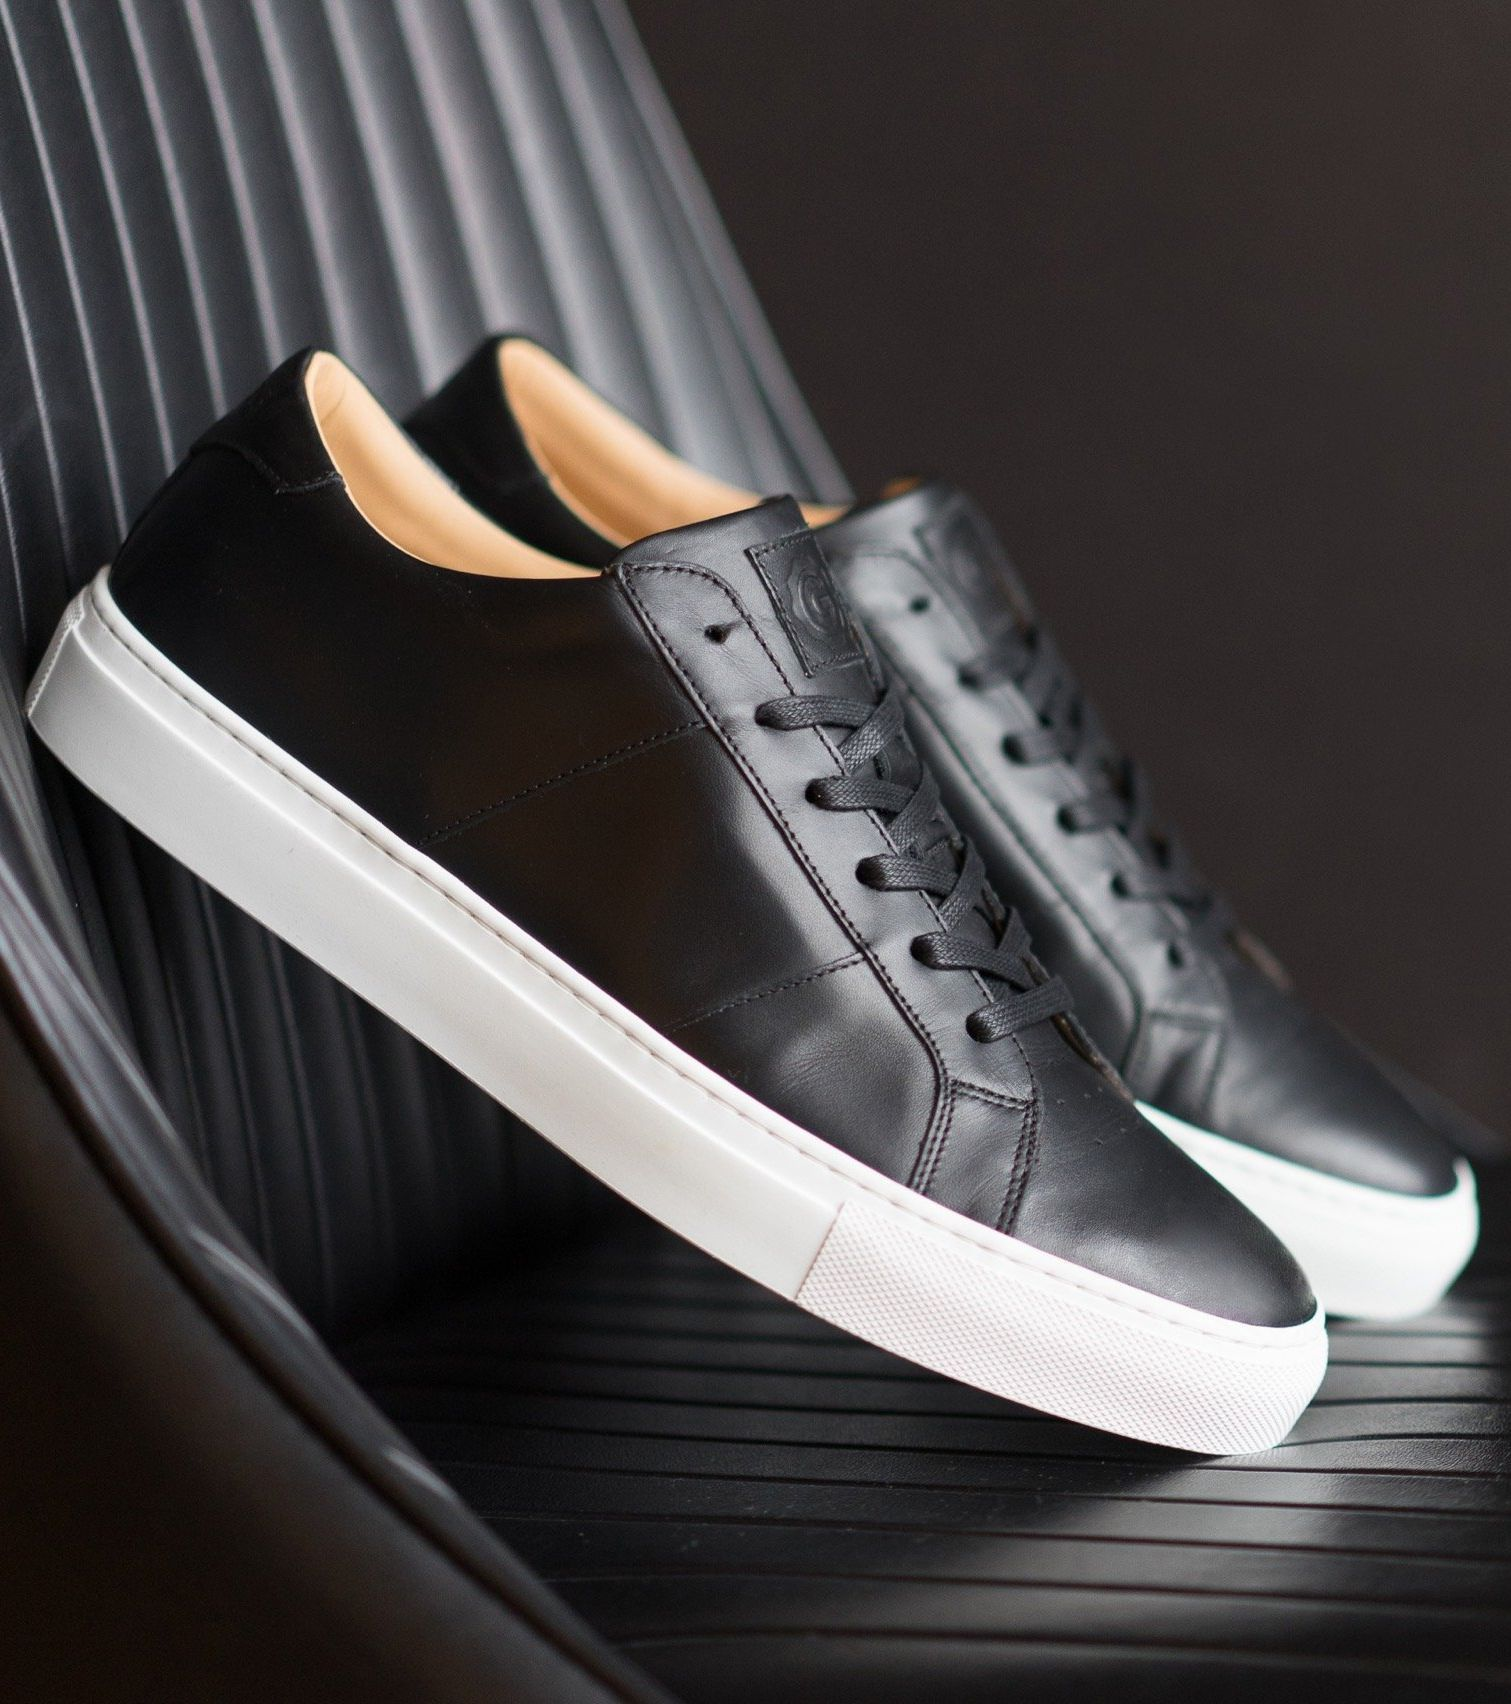 The Royale Men's Sneaker from Greats